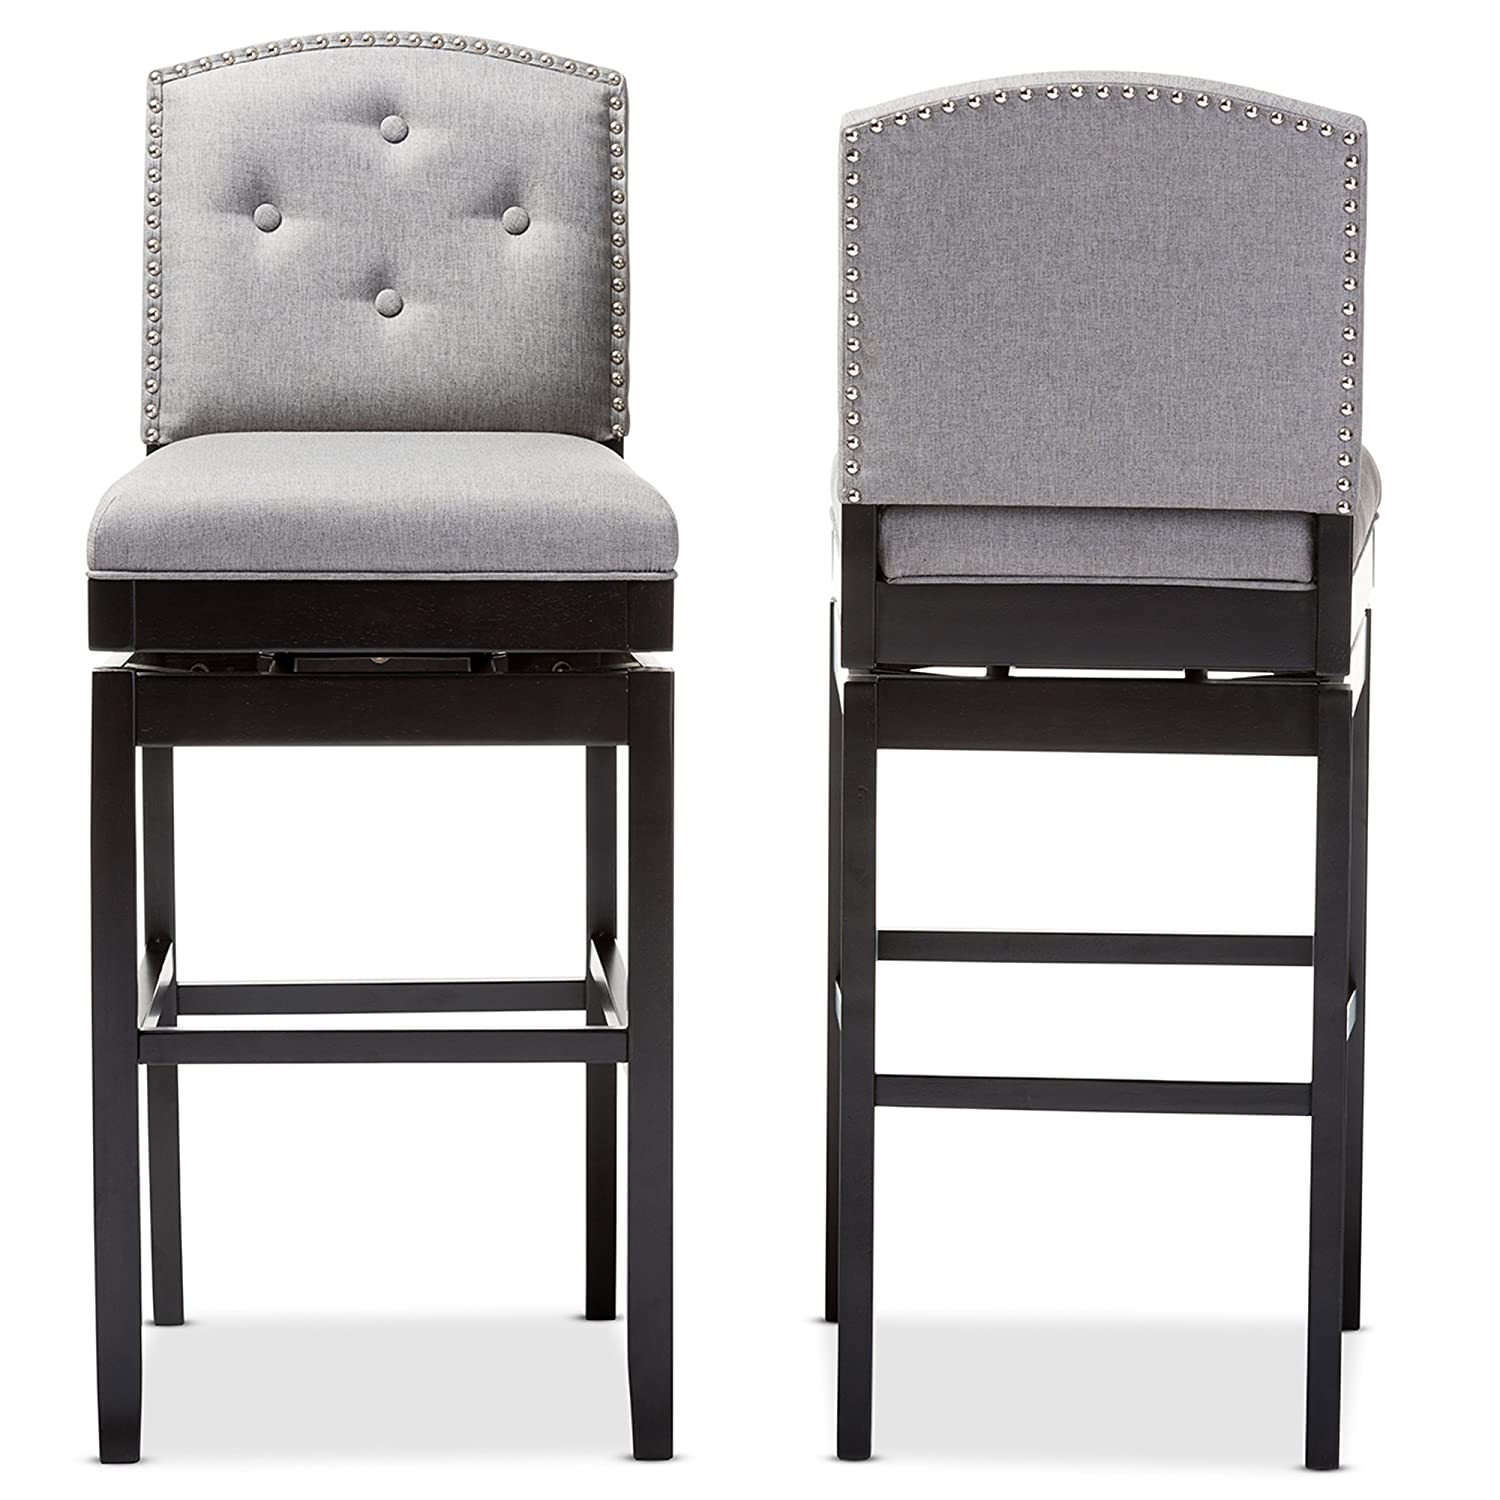 Amazon.com: Baxton Studio Ginaro Modern U0026 Contemporary Fabric Button Tufted  Upholstered Swivel Bar Stool (Set Of 2), Grey: Kitchen U0026 Dining